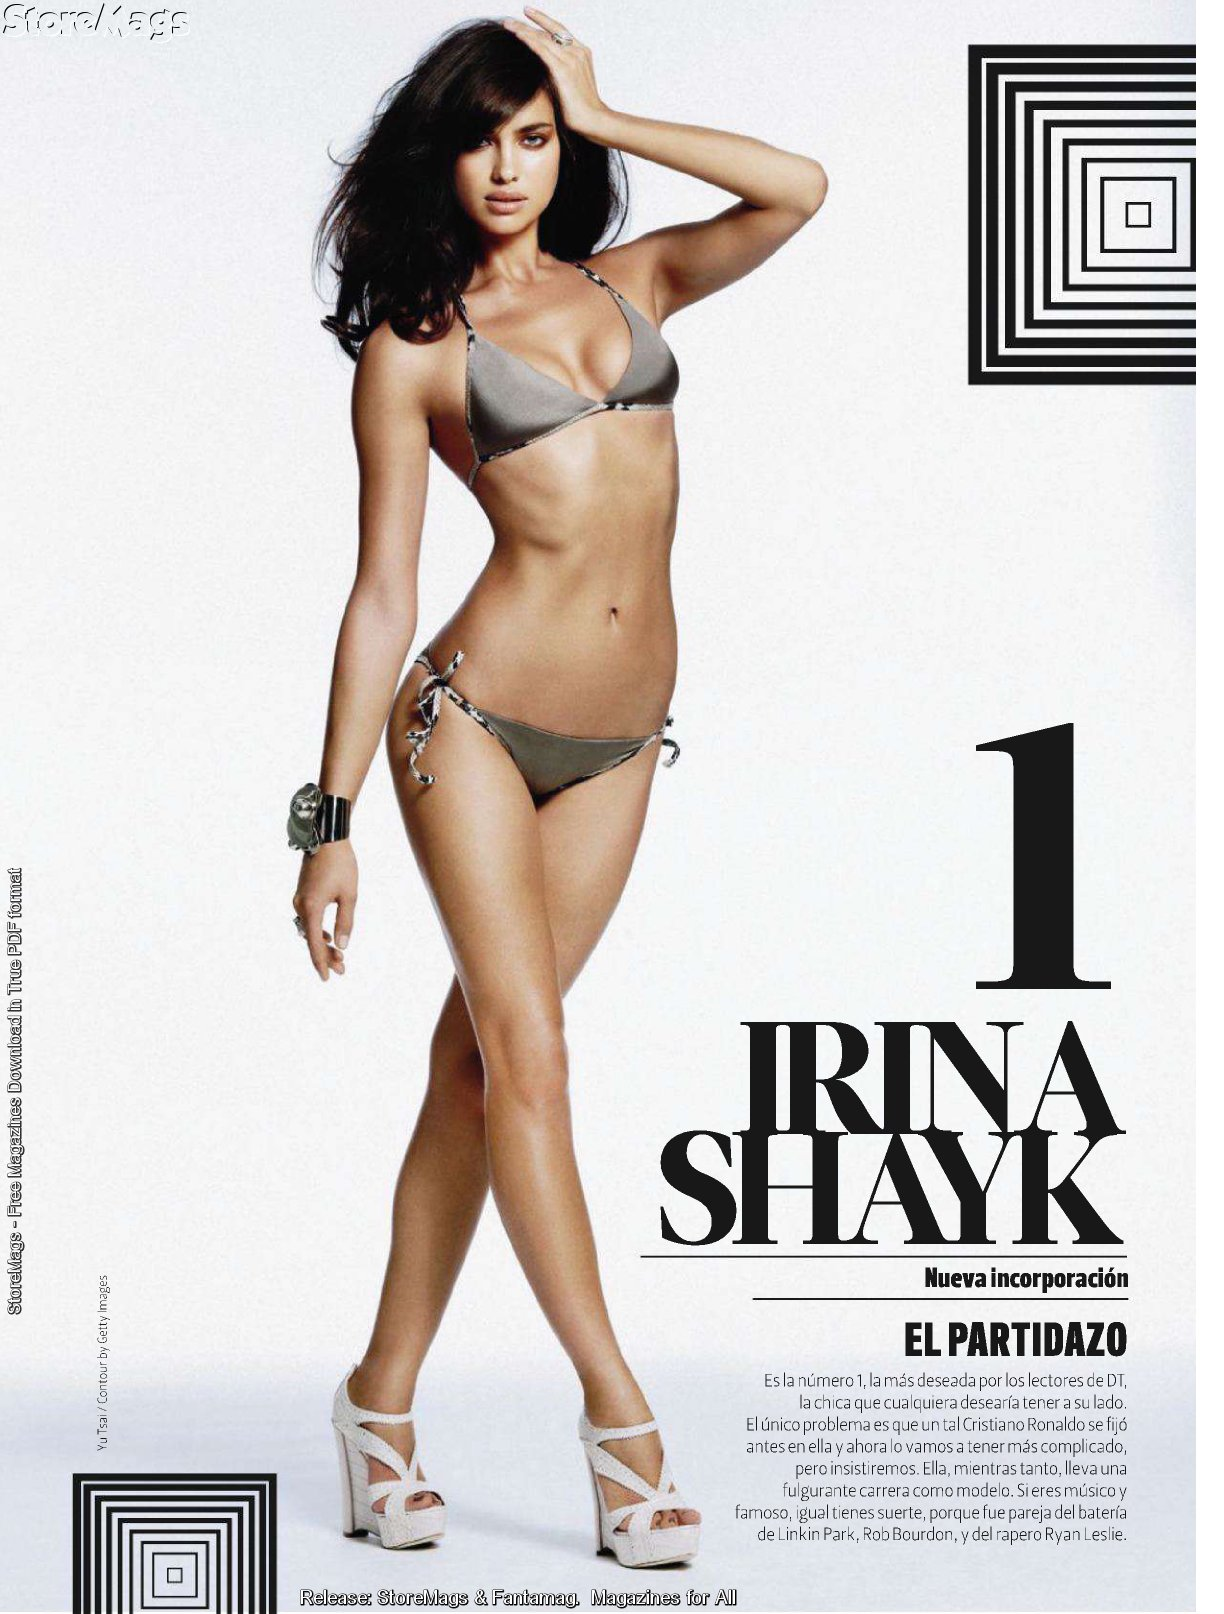 55556_septimiu29_TOP50SexiestWomenOfTheWorld_DTSpain_Feb20114_122_195lo.jpg